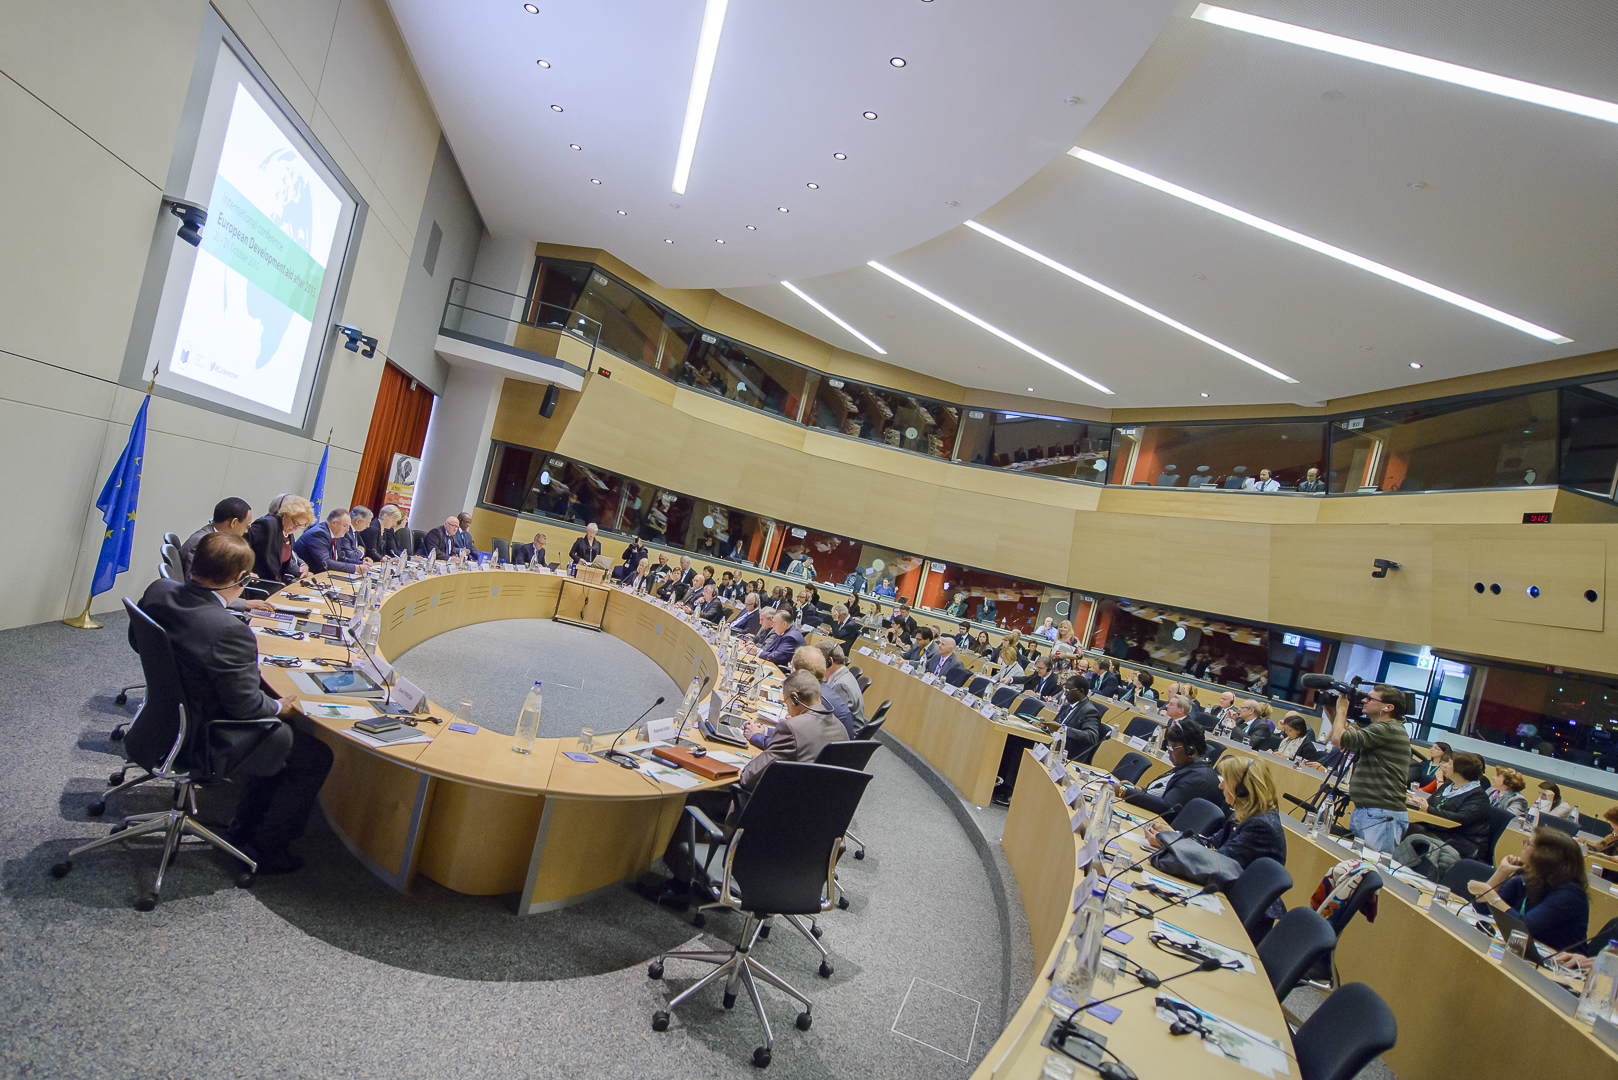 Conference on EU development aid policy after 2015: Opening session, 20.10.2015